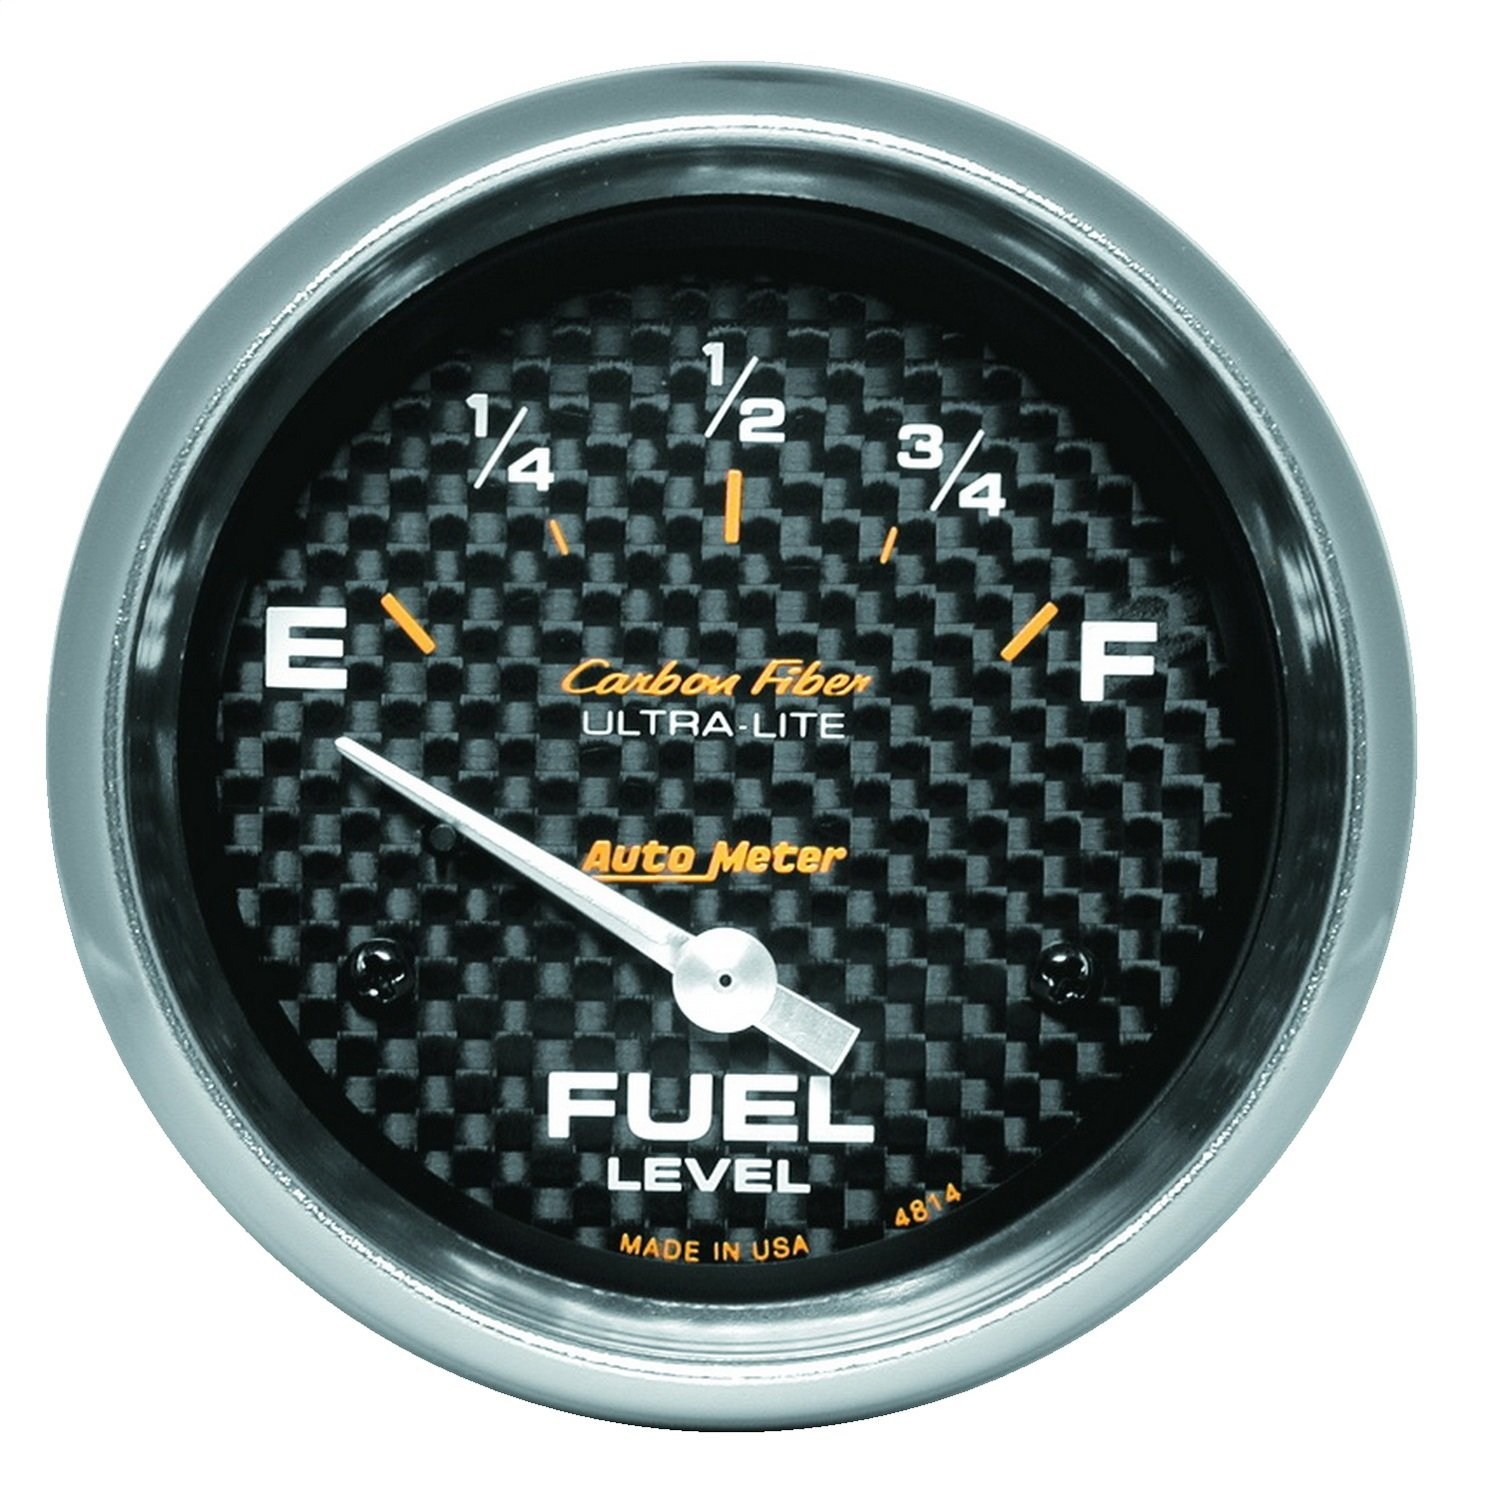 Auto Meter 4814 Carbon Fiber Electric Fuel Level Gauge